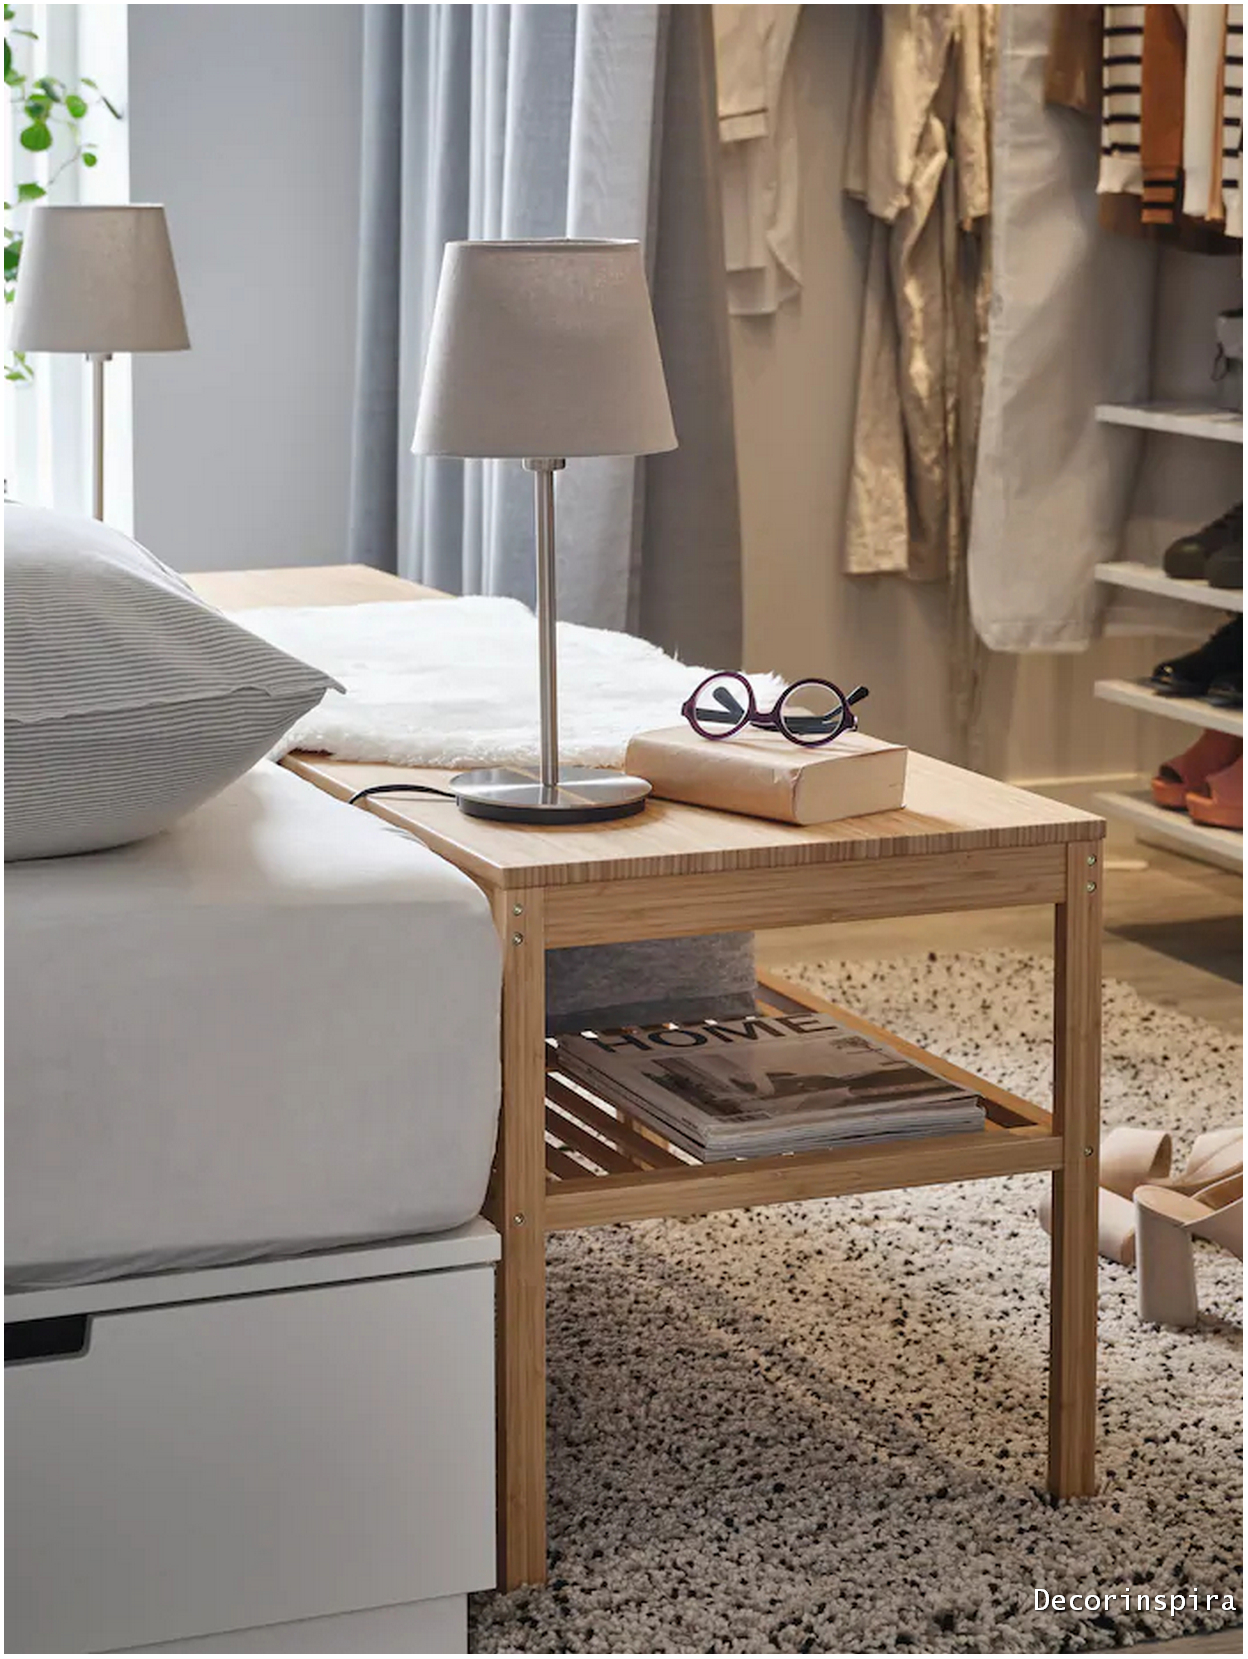 Functional and Stylish Storage For Bedroom Furniture